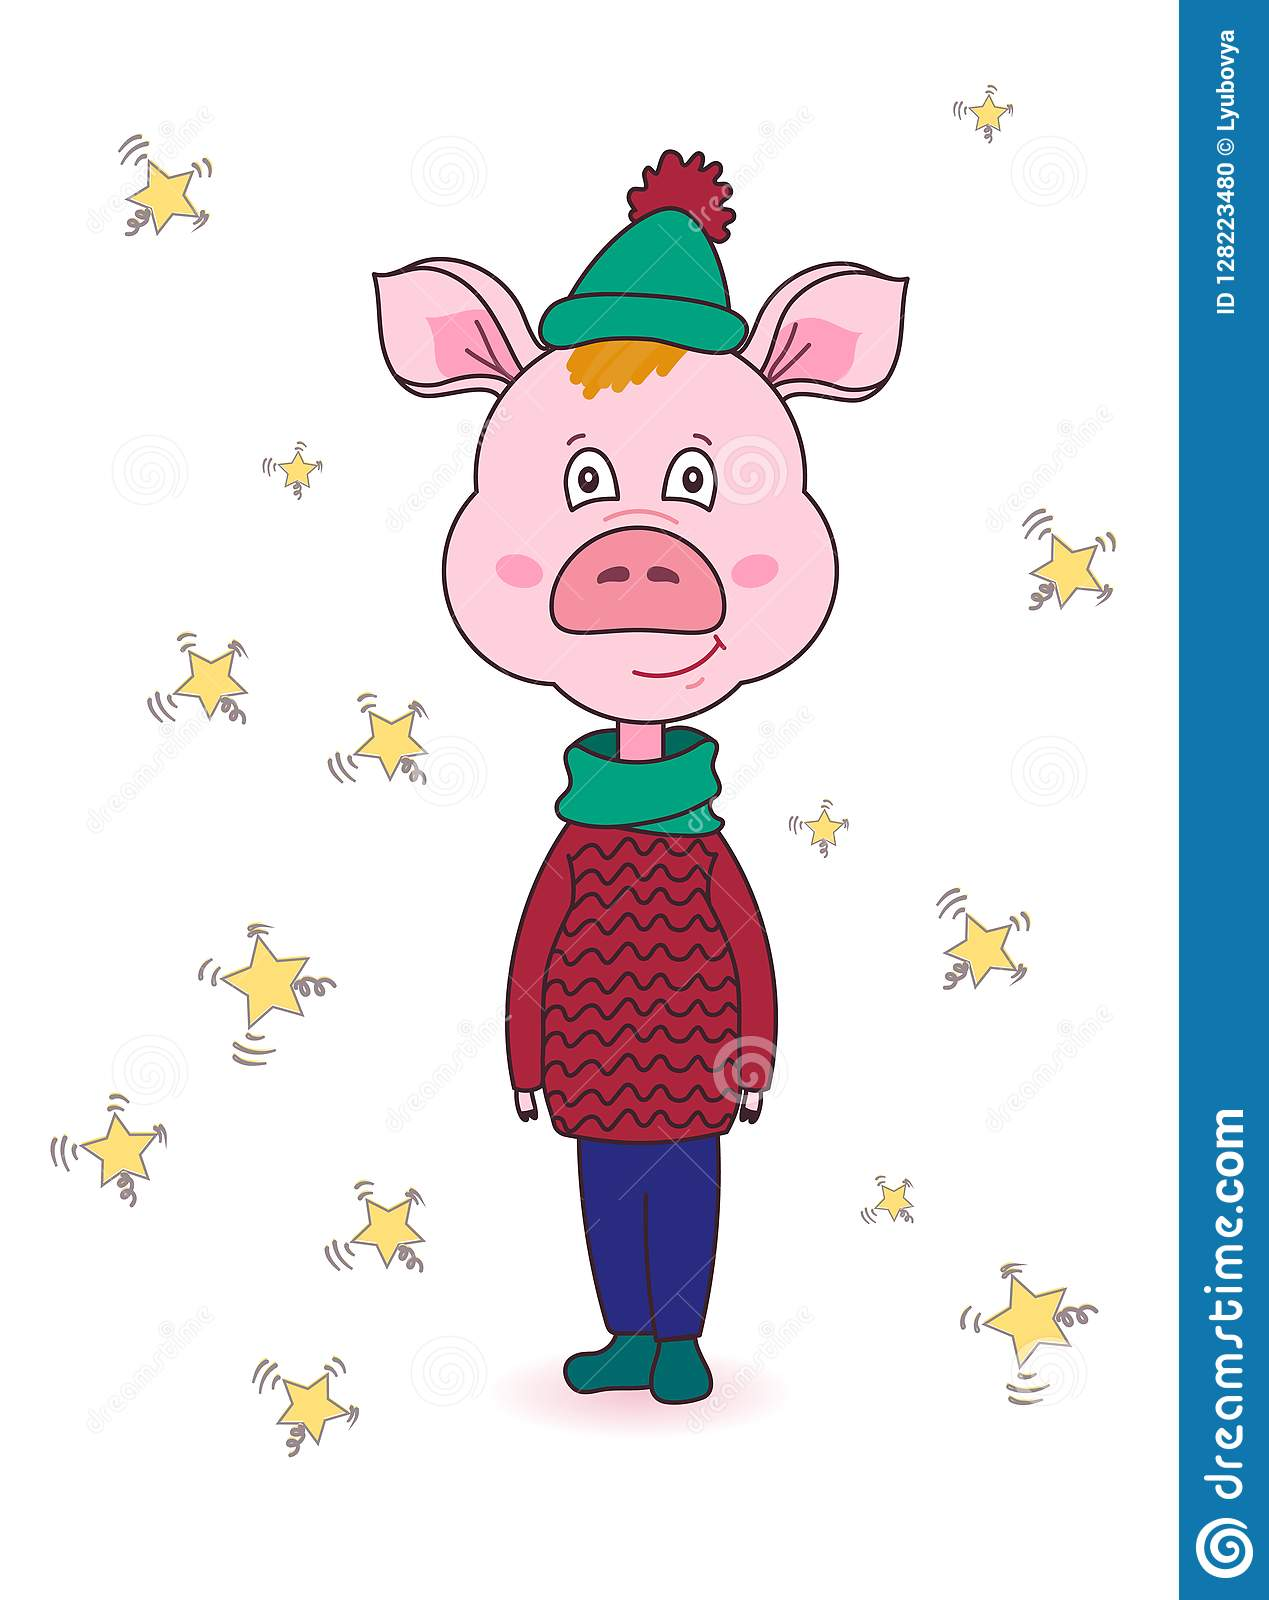 cartoon pink pig in winter clothescute new year characterisolated image